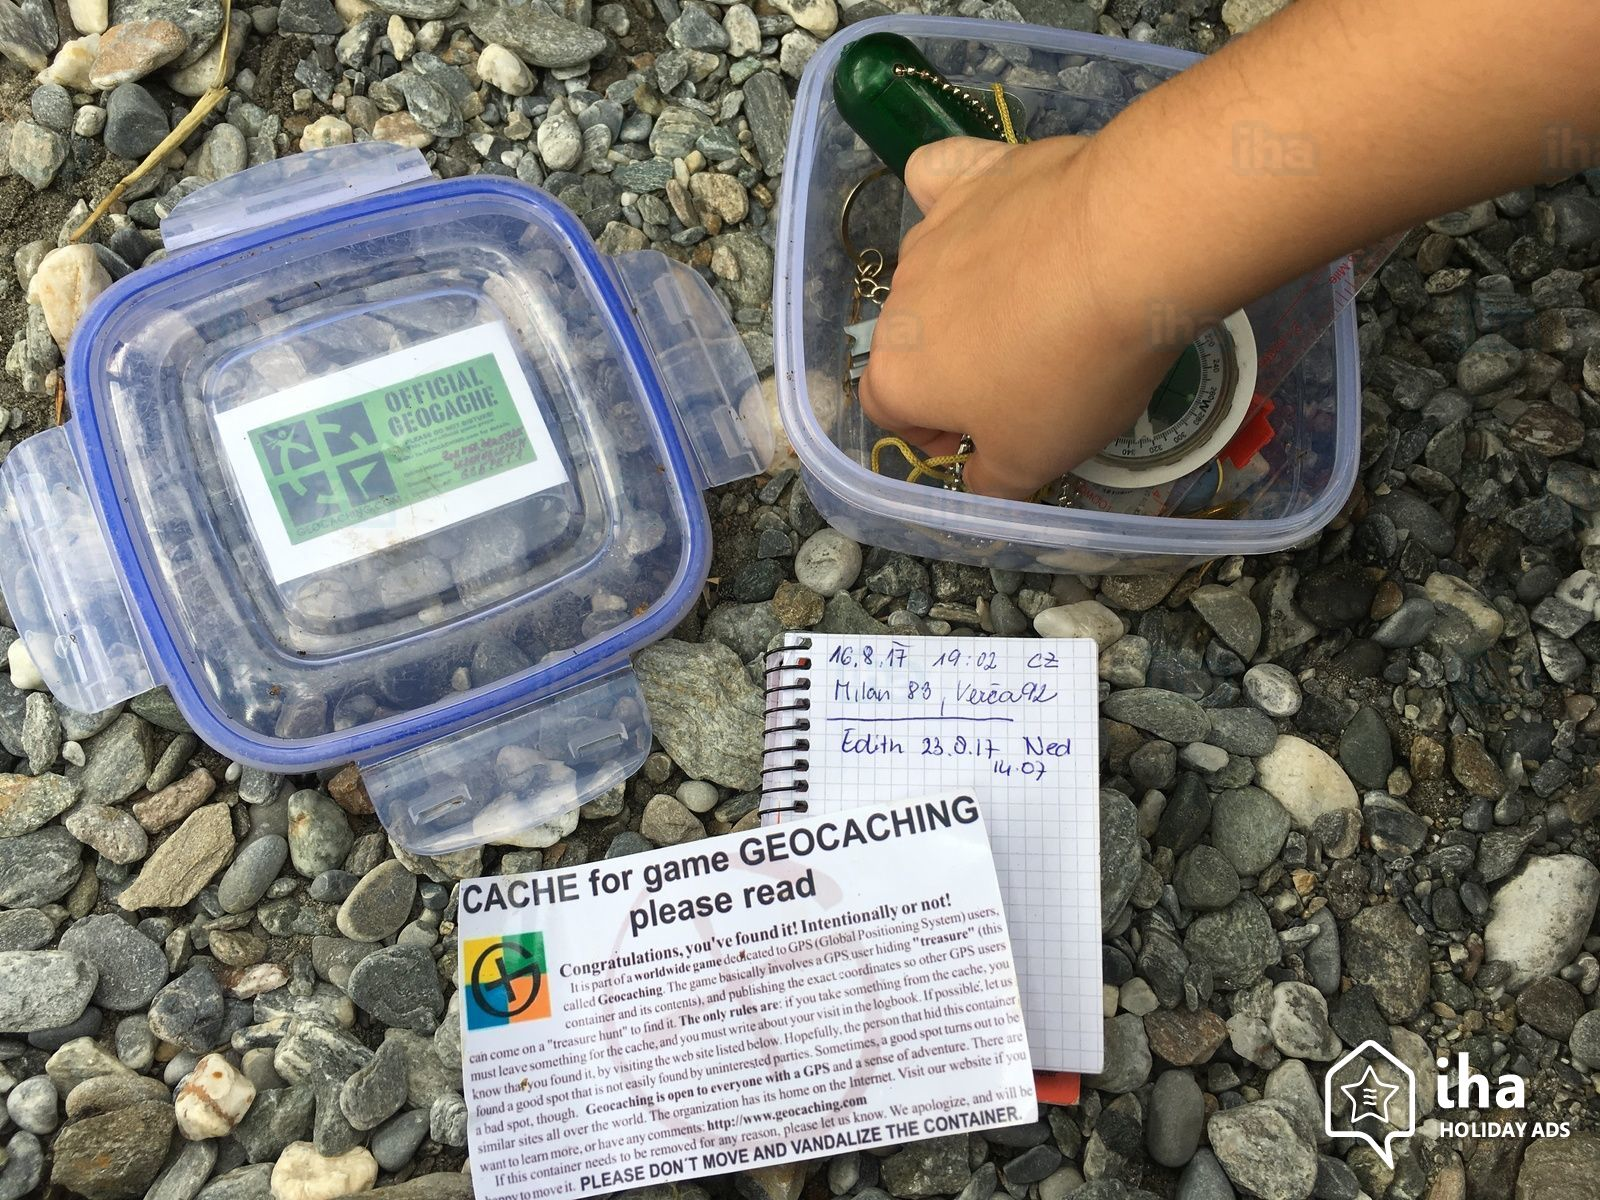 National Scavenger Hunt Day: Geocaching